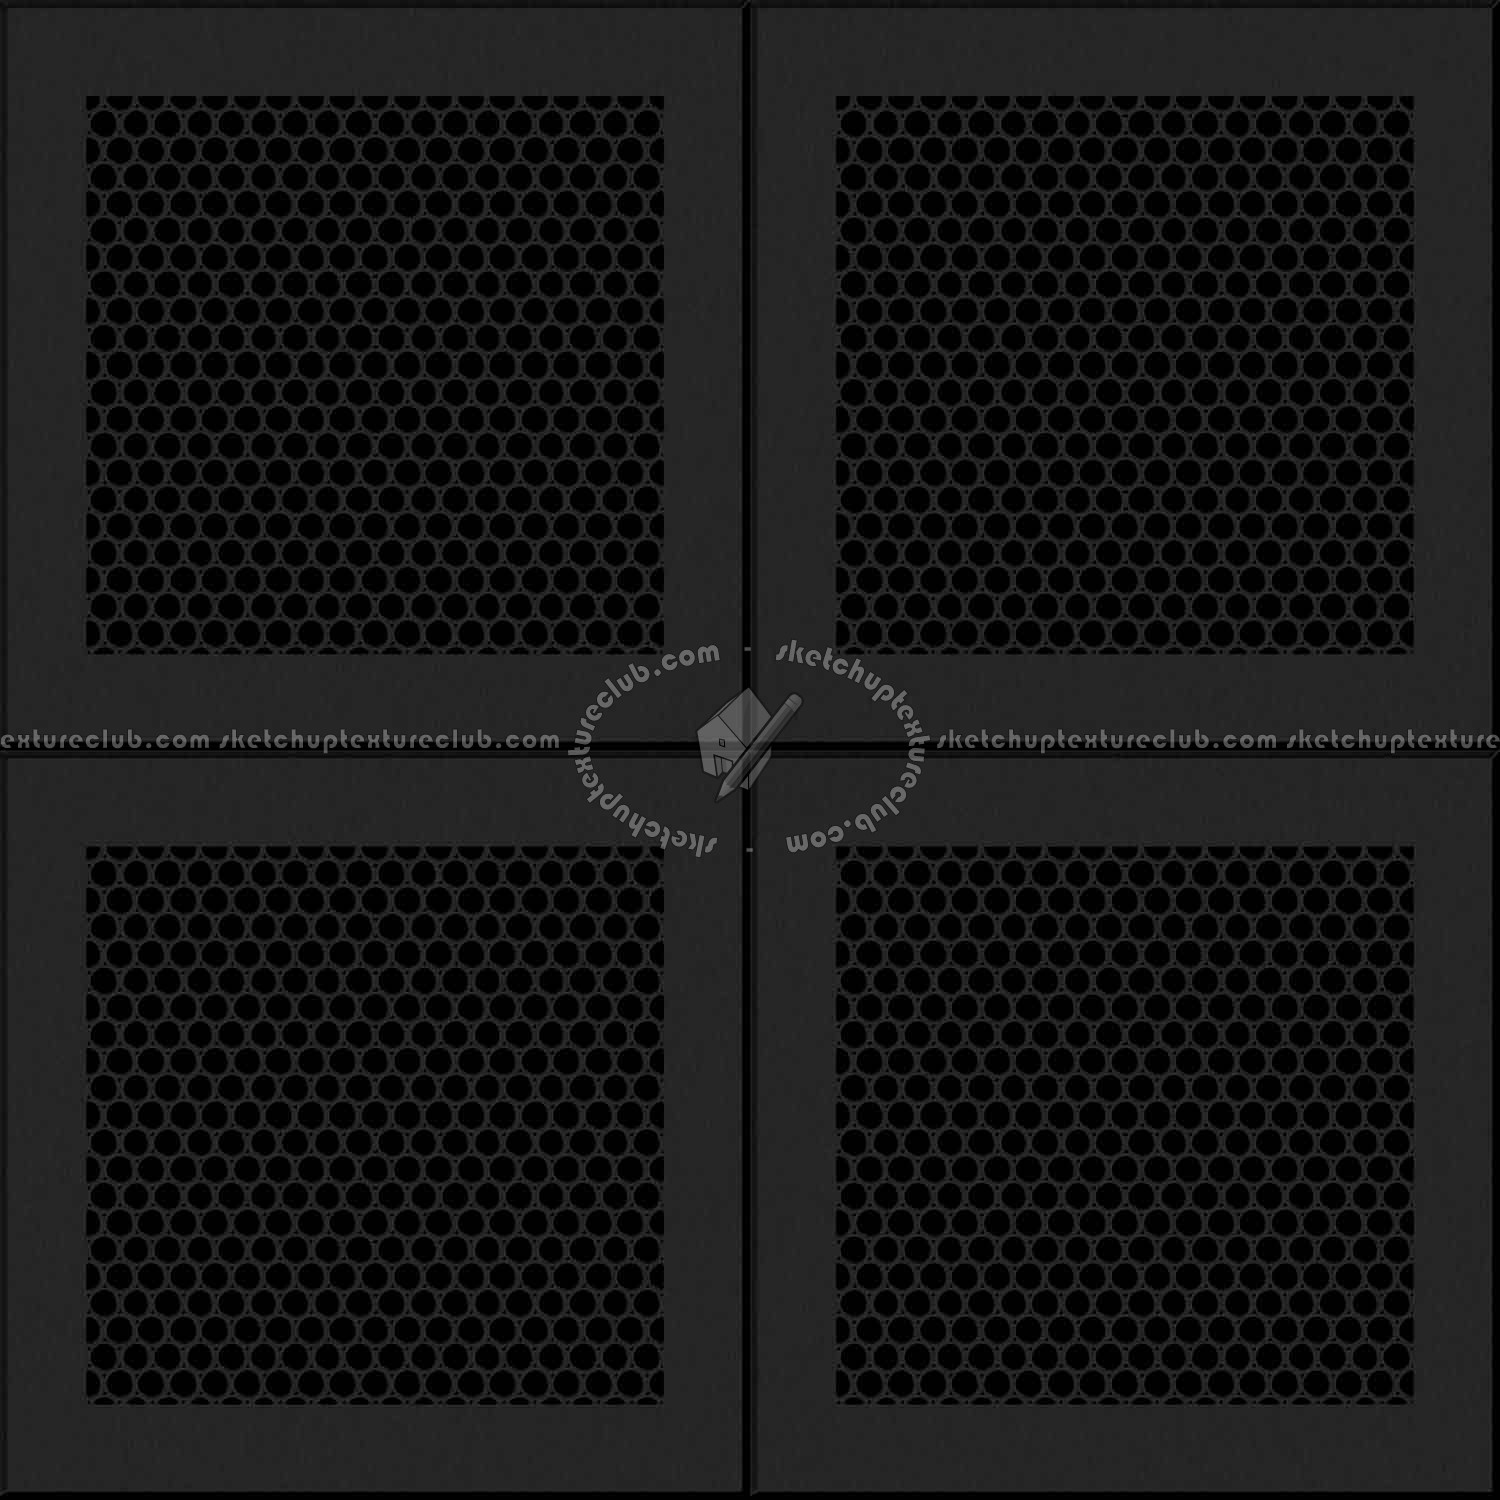 White Ceiling Perforated Metal Texture Seamless 10572